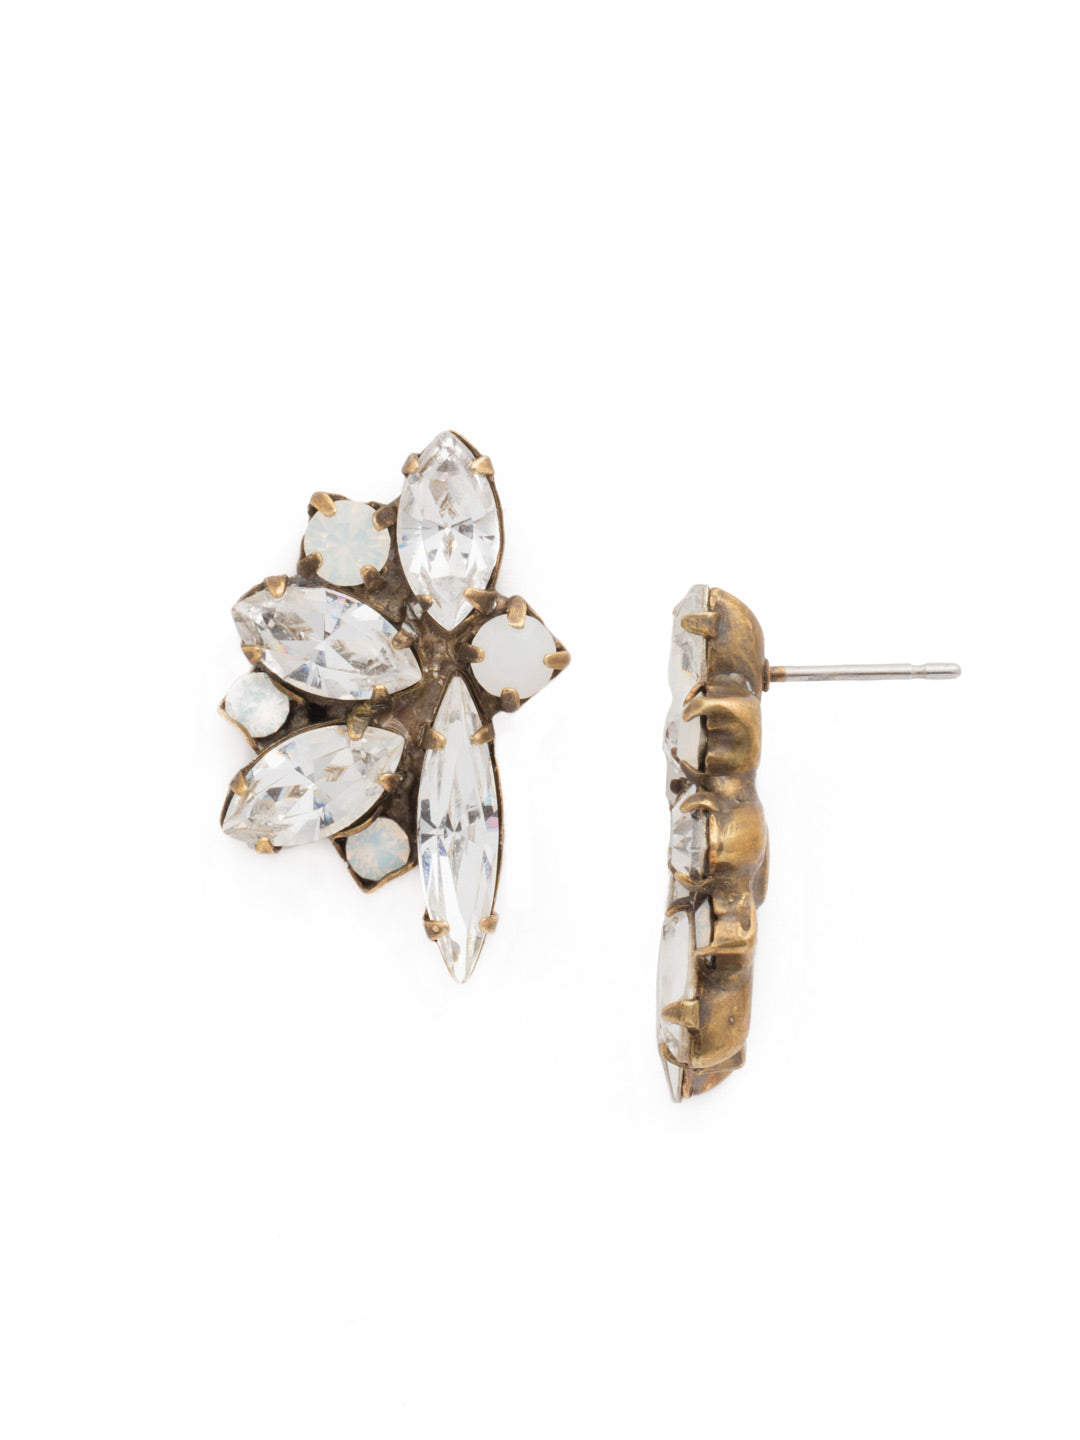 Fanned Navette Crystal Post Earring - ECZ21AGPLU